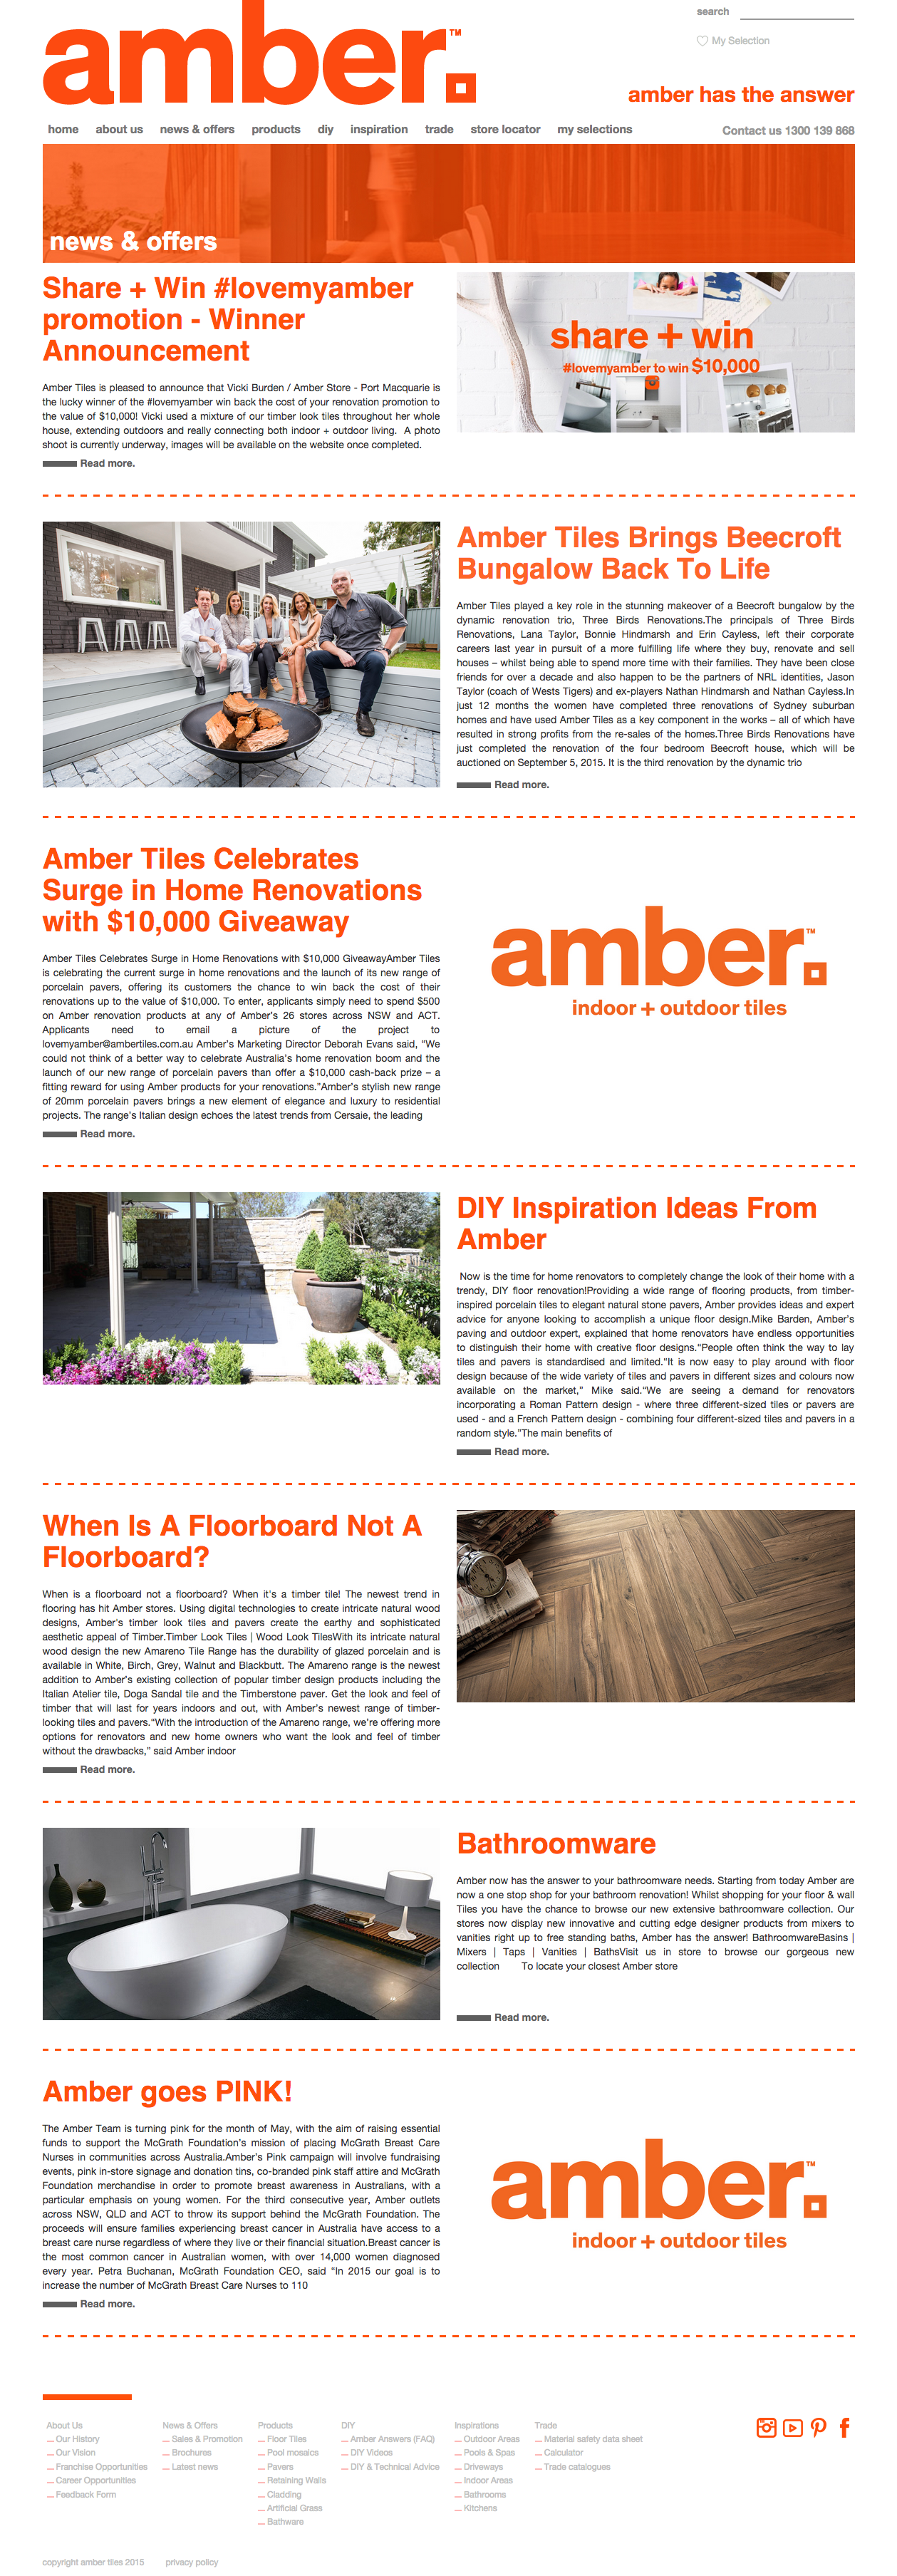 New Amber Tiles Website - News and Offers